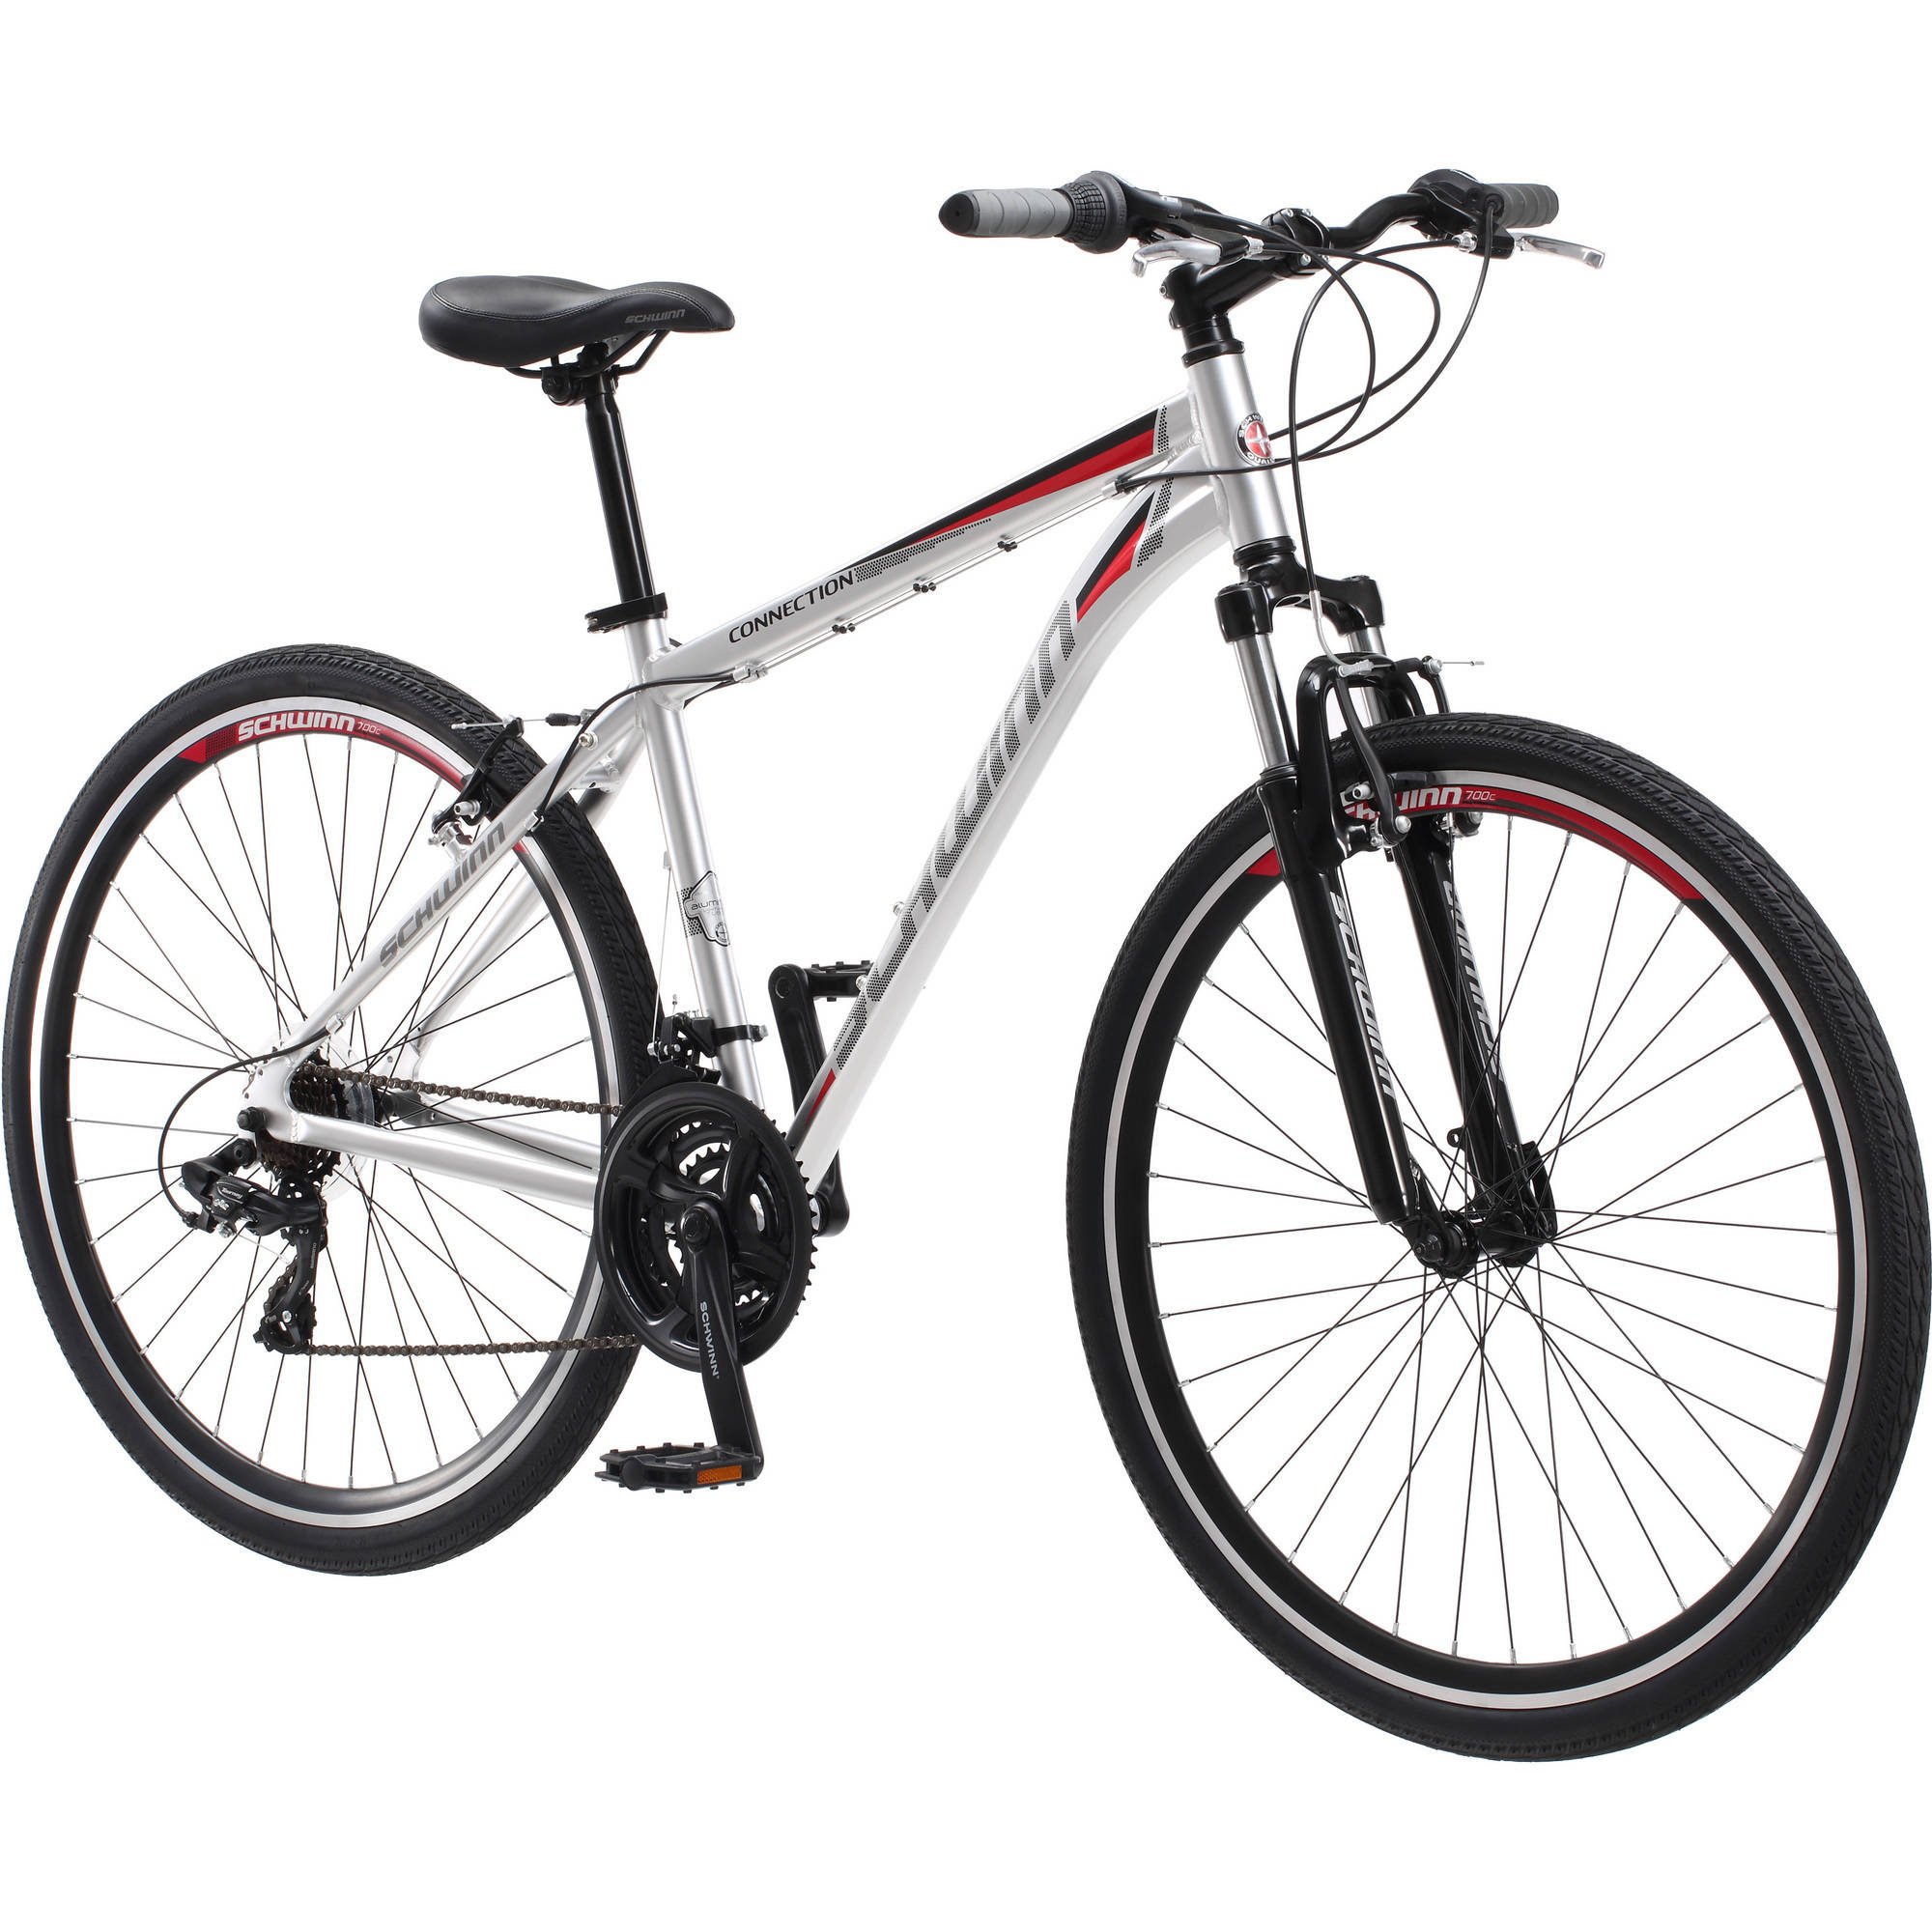 Schwinn 700c Men's Connection Multi-Use Bike by Pacific Cycle